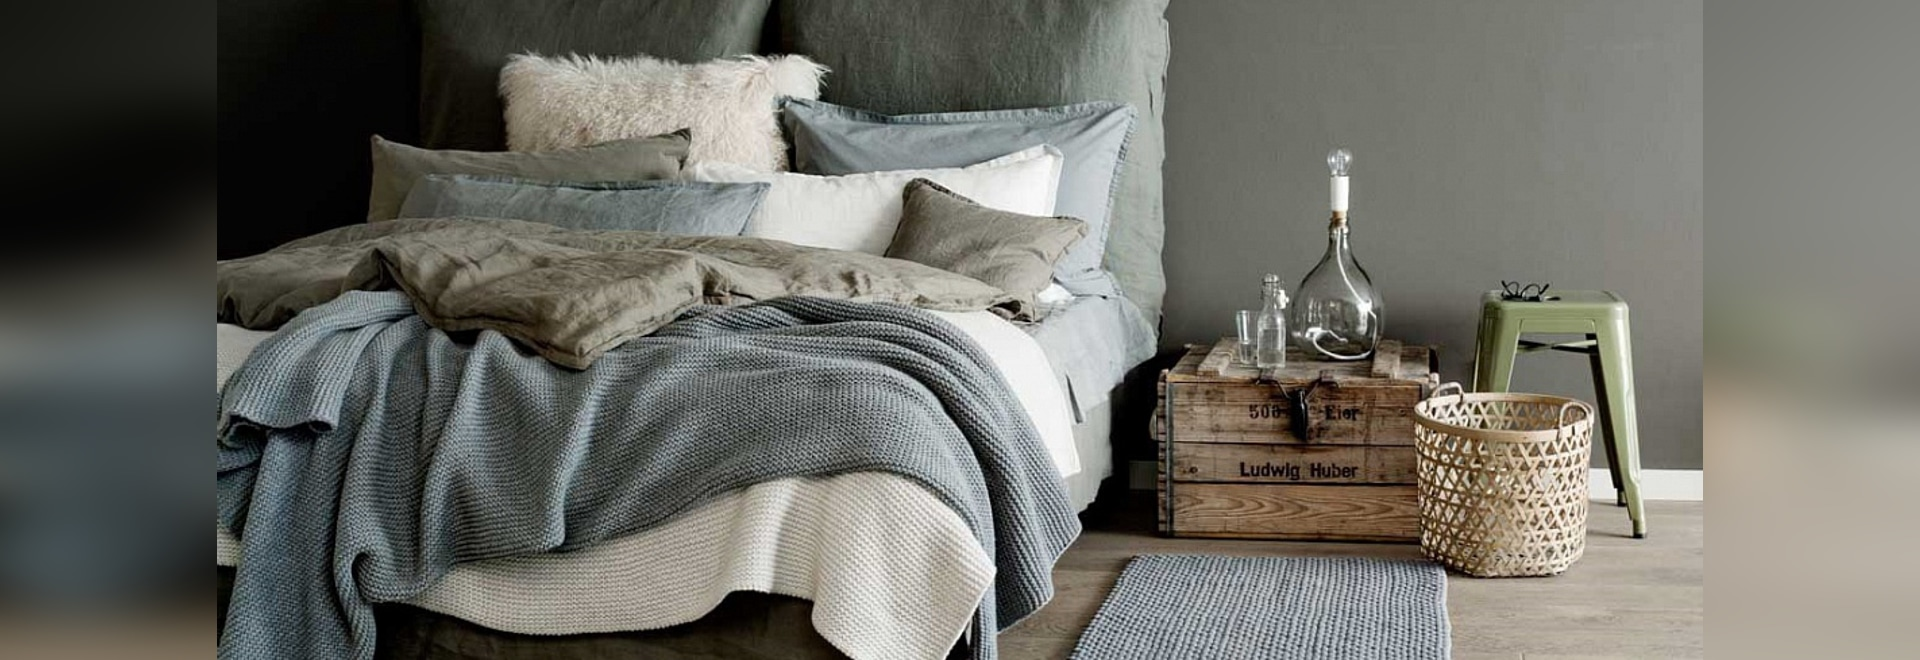 Sunday in Bed: Like Being on Vacation Every Day with the Right Textiles